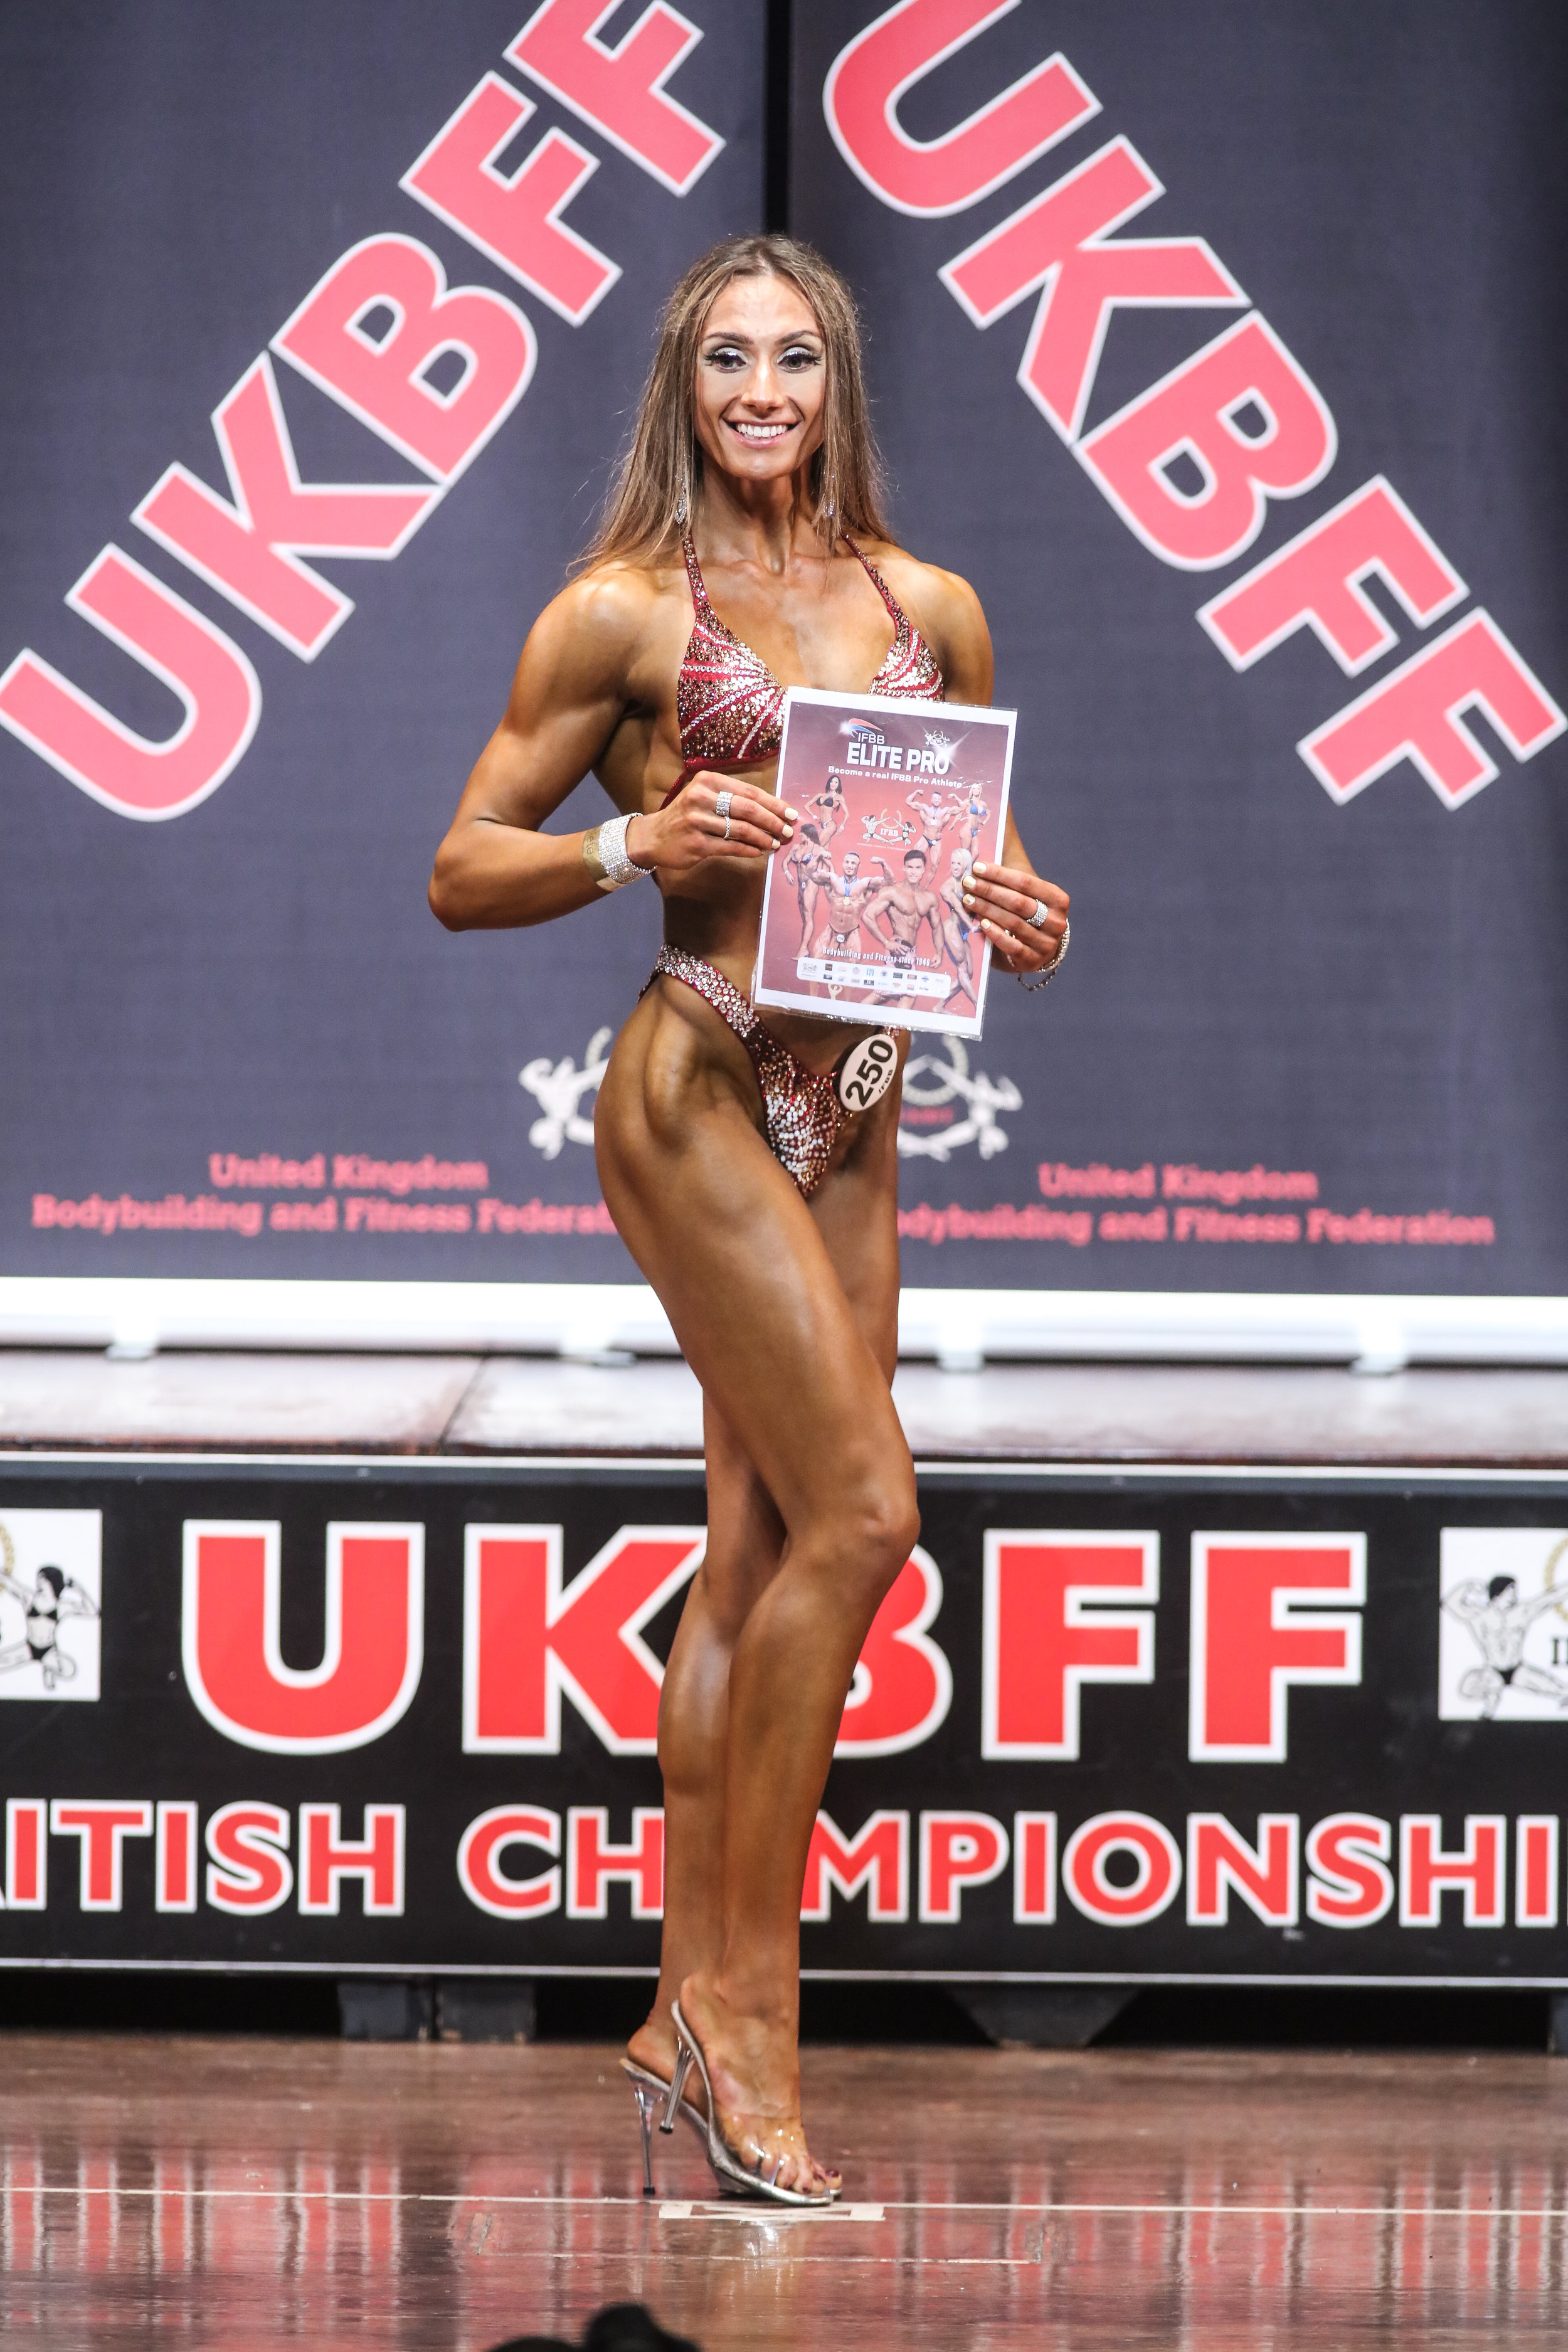 At 21 years old, British bodyfitness competitor Connie Slyziut is one of the bright new stars of the IFBB Elite Pro division.